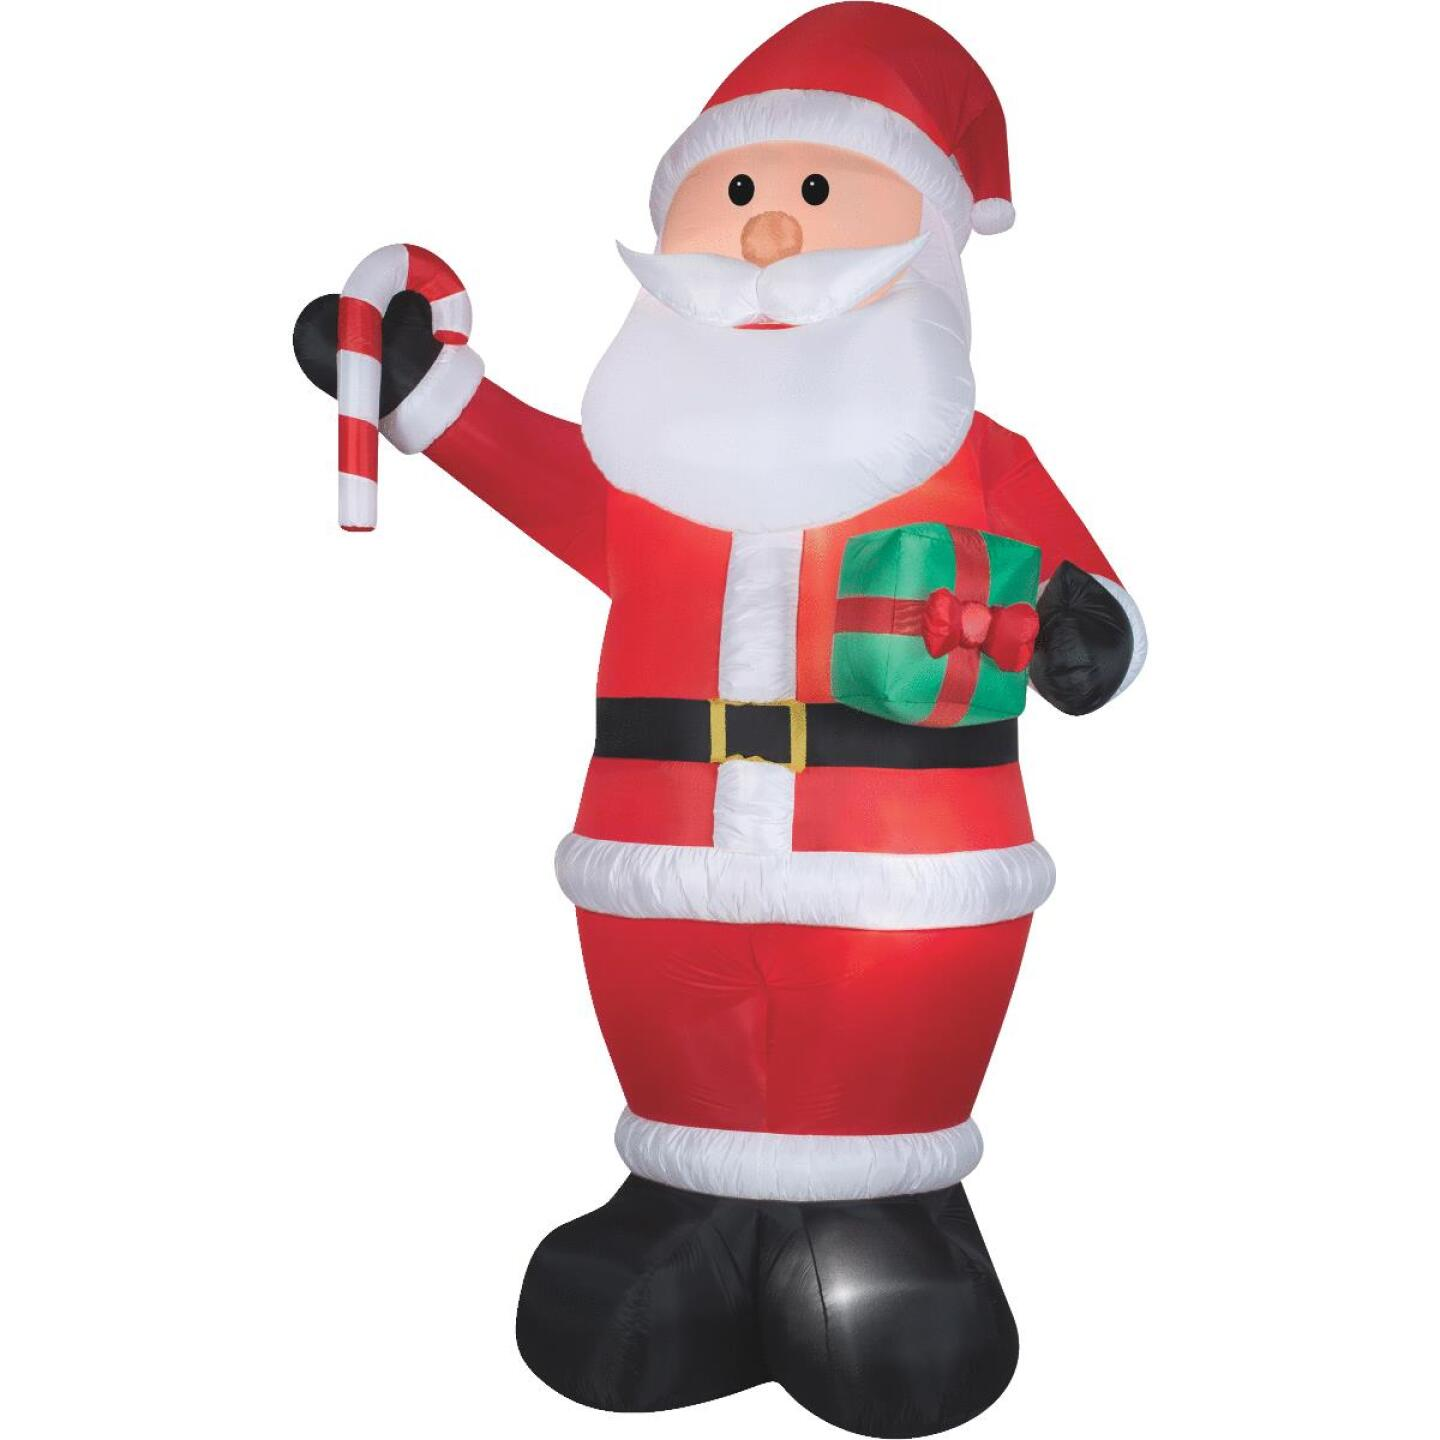 Gemmy 6-1/2 Ft. W. x 12 Ft. H. Airblown Inflatable Santa Image 1